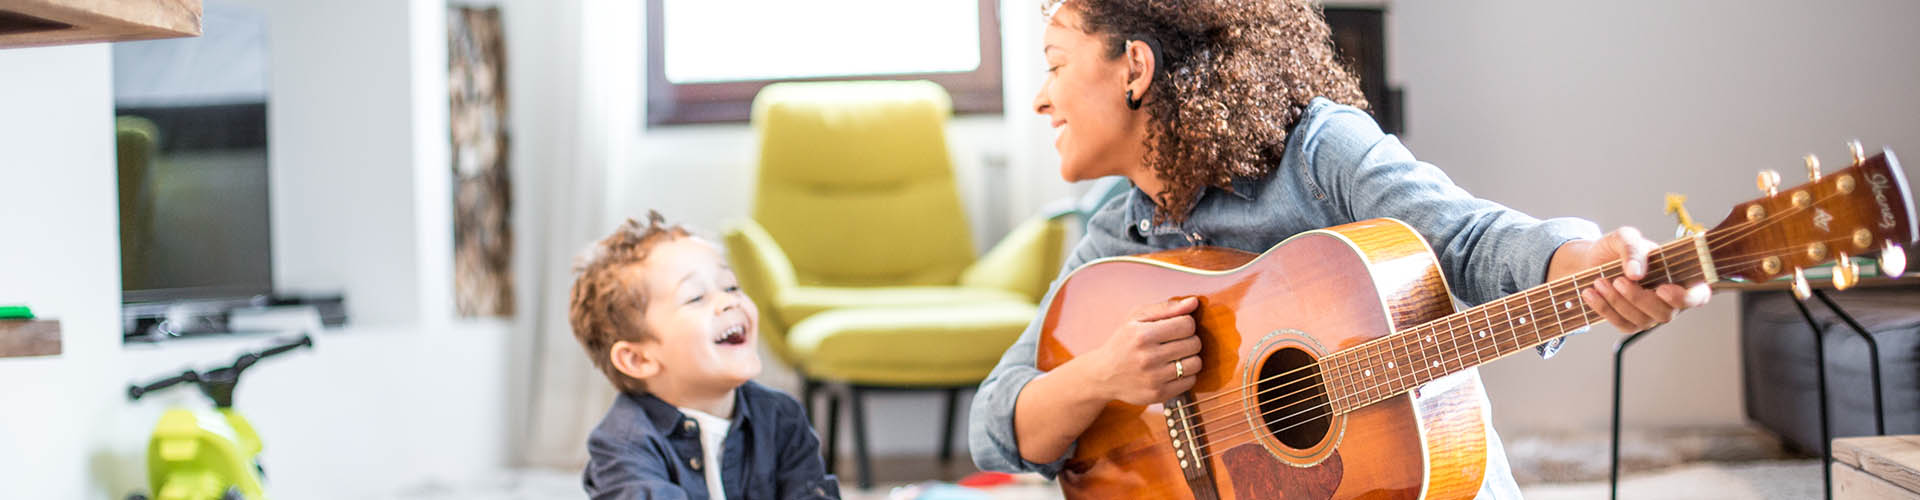 listening-to-music-with-cochlear-implants